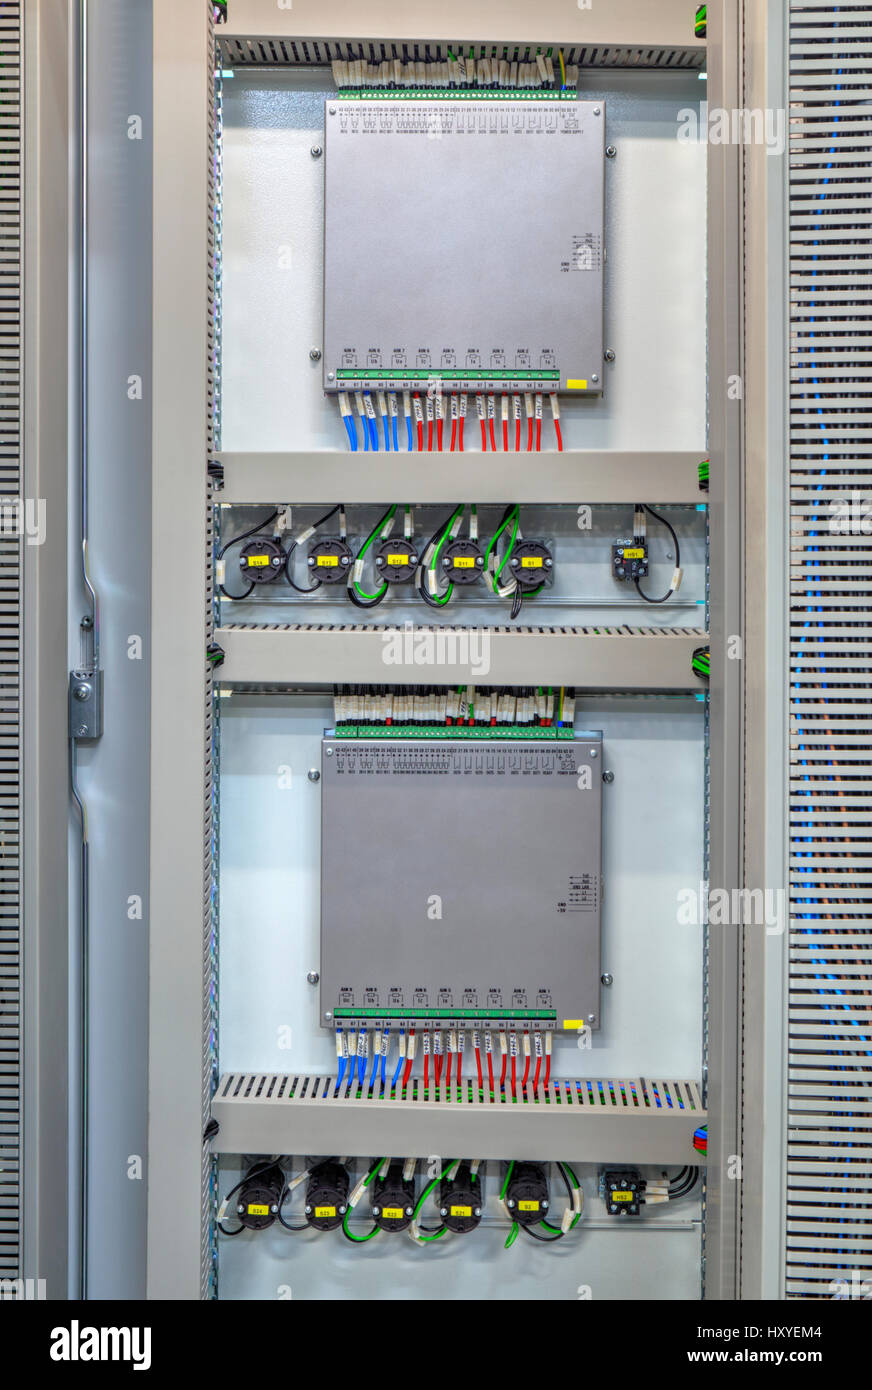 Industrial Electrical Panel With Electronic Devices For Relay Stock Wiring Protection And Process Controlling Closeup